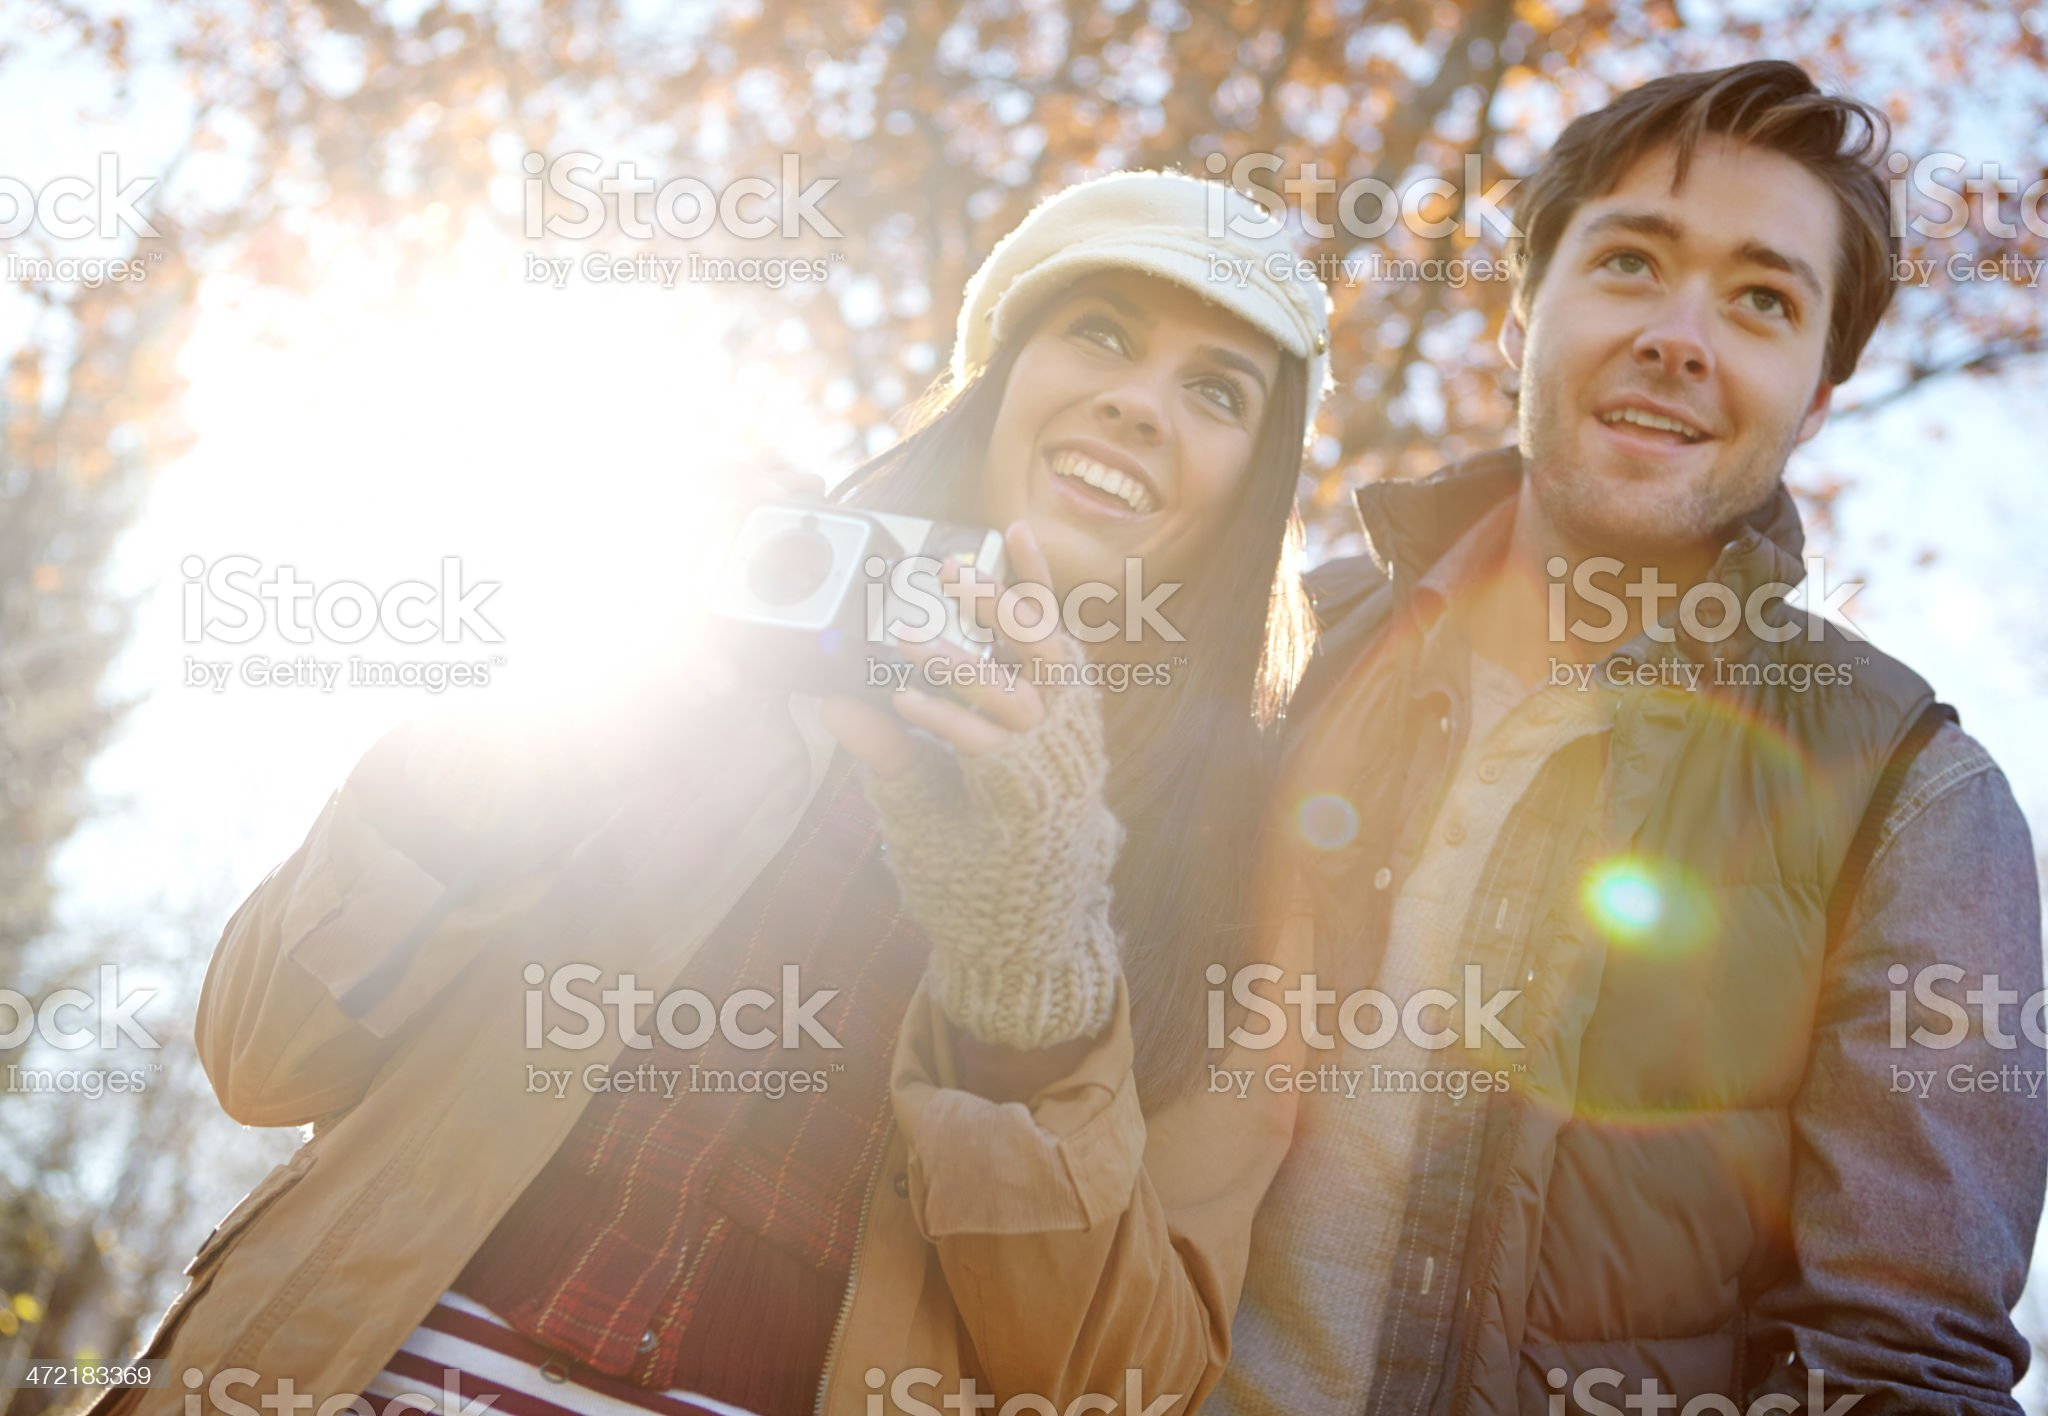 Capturing the beauty of an autumn day... royalty-free stock photo